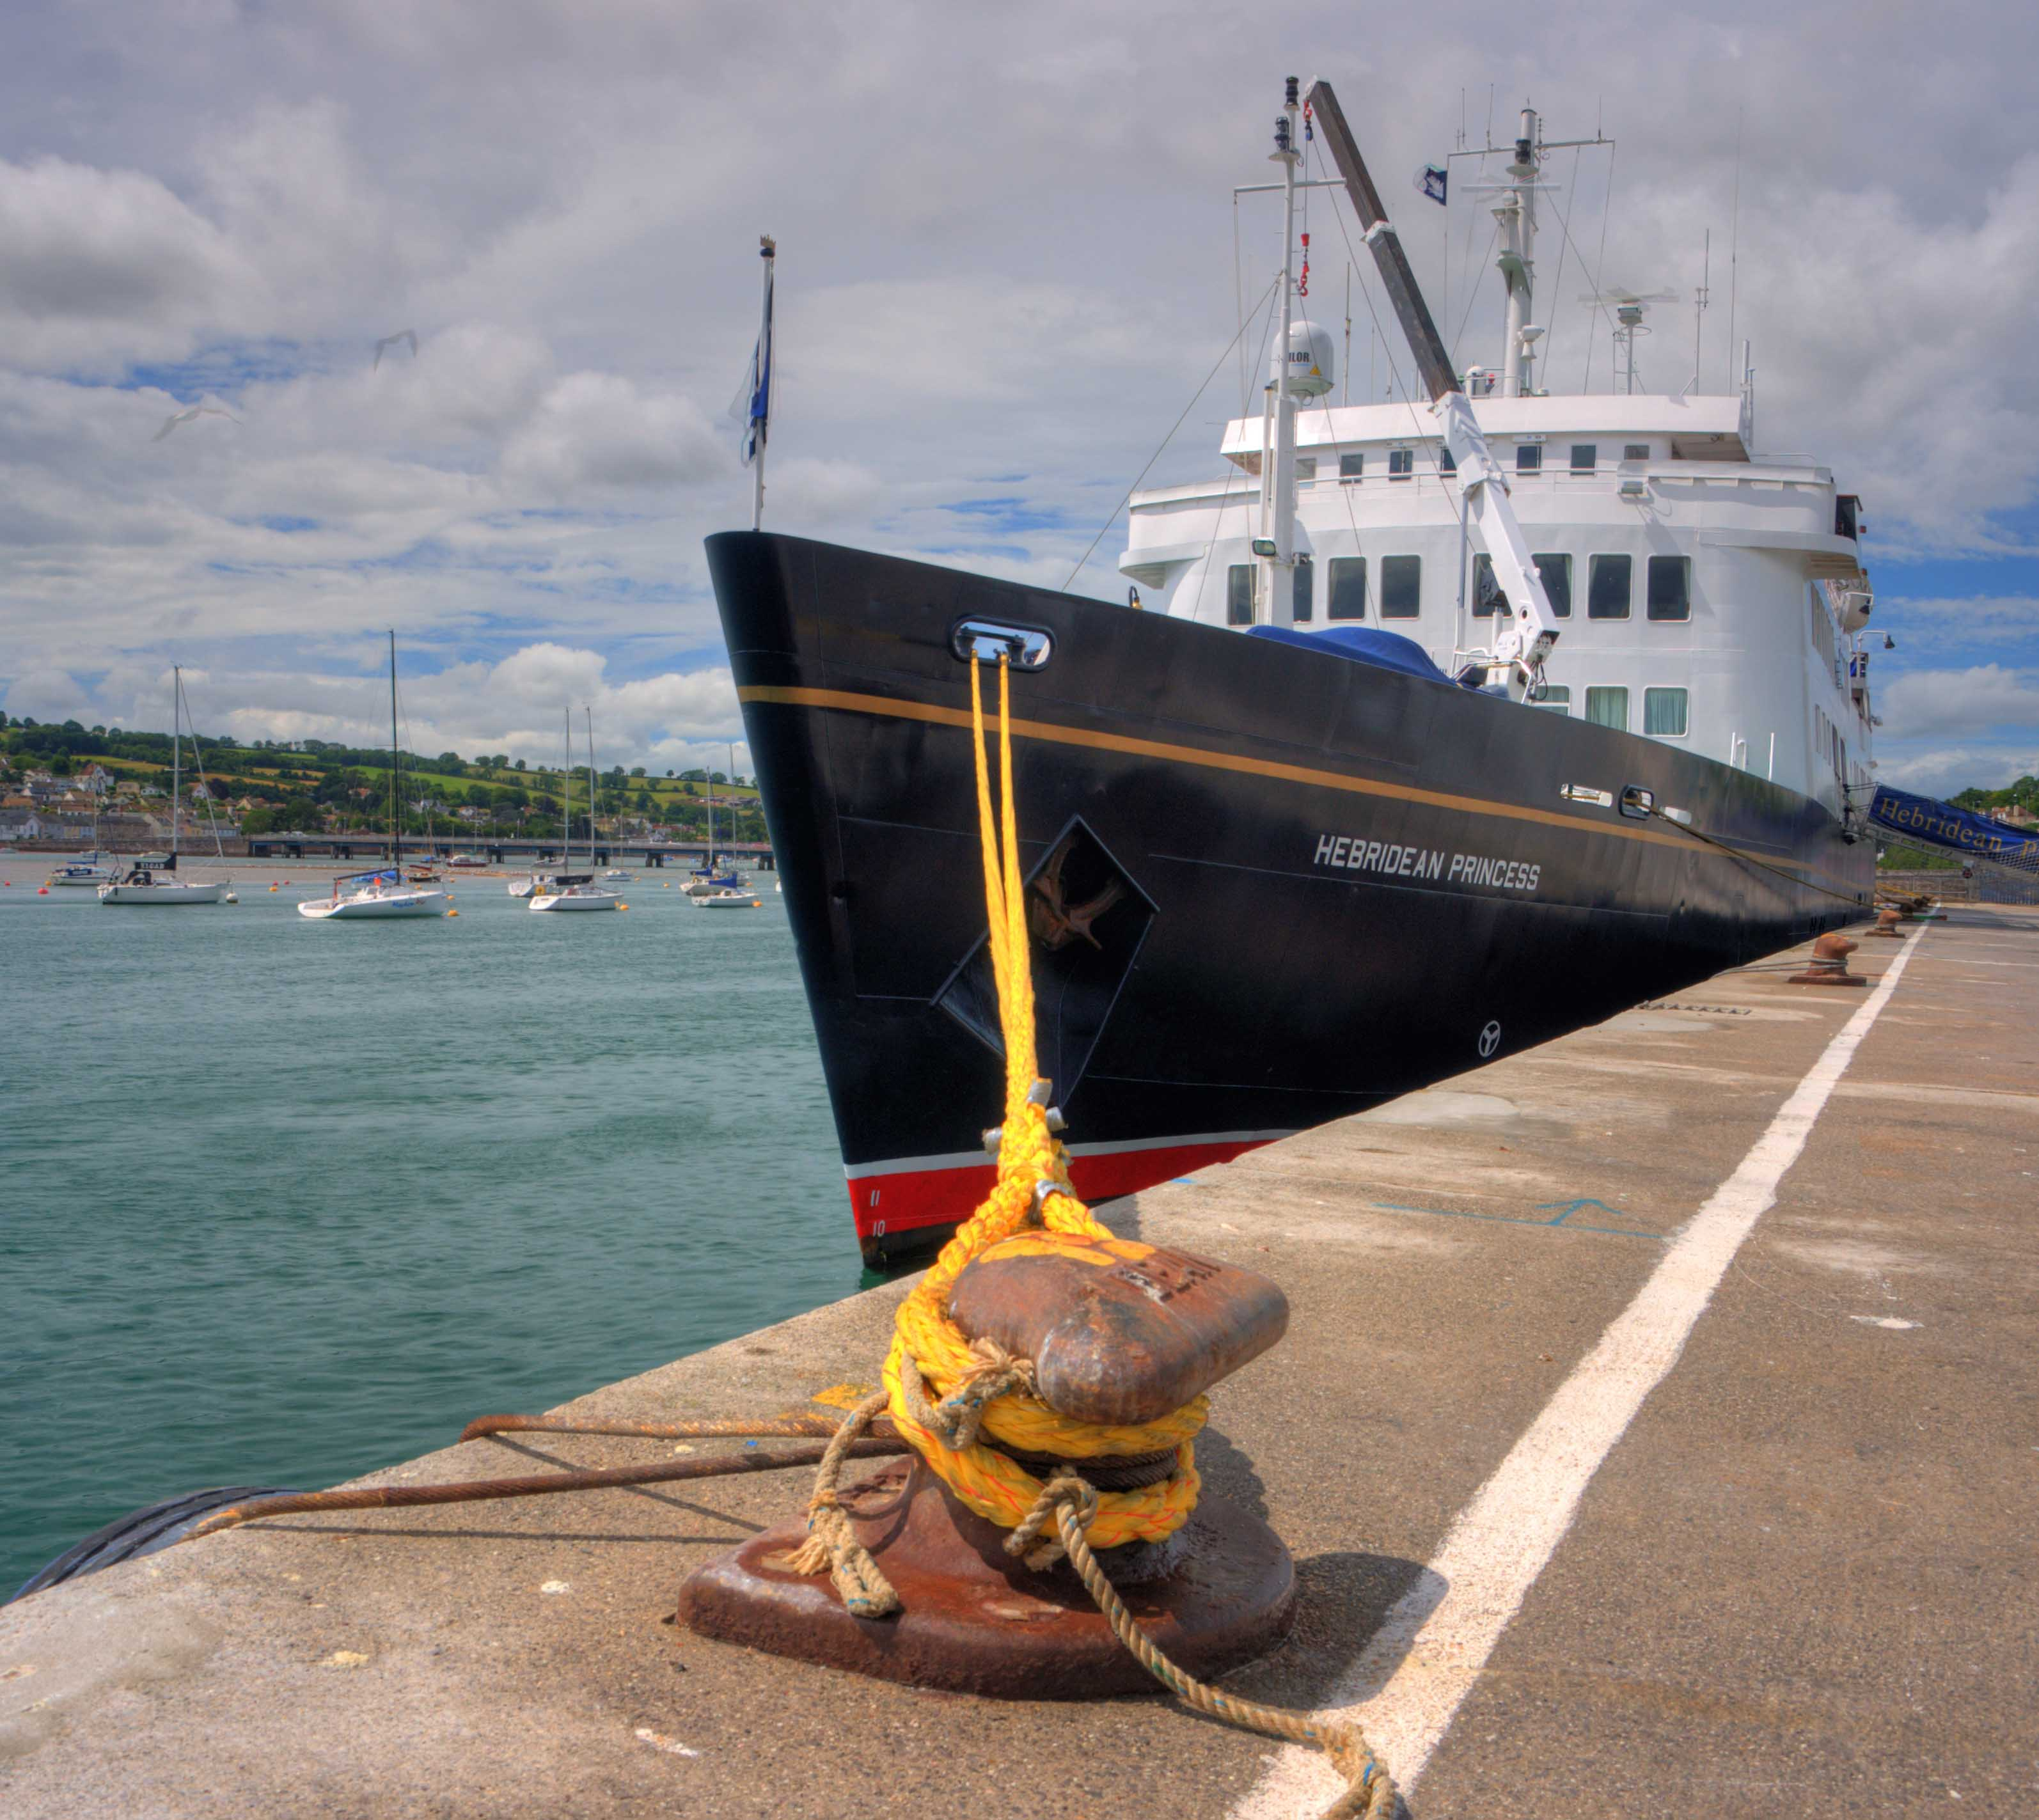 Port of Teignmouth welcomes its first cruise ship | Associated ...